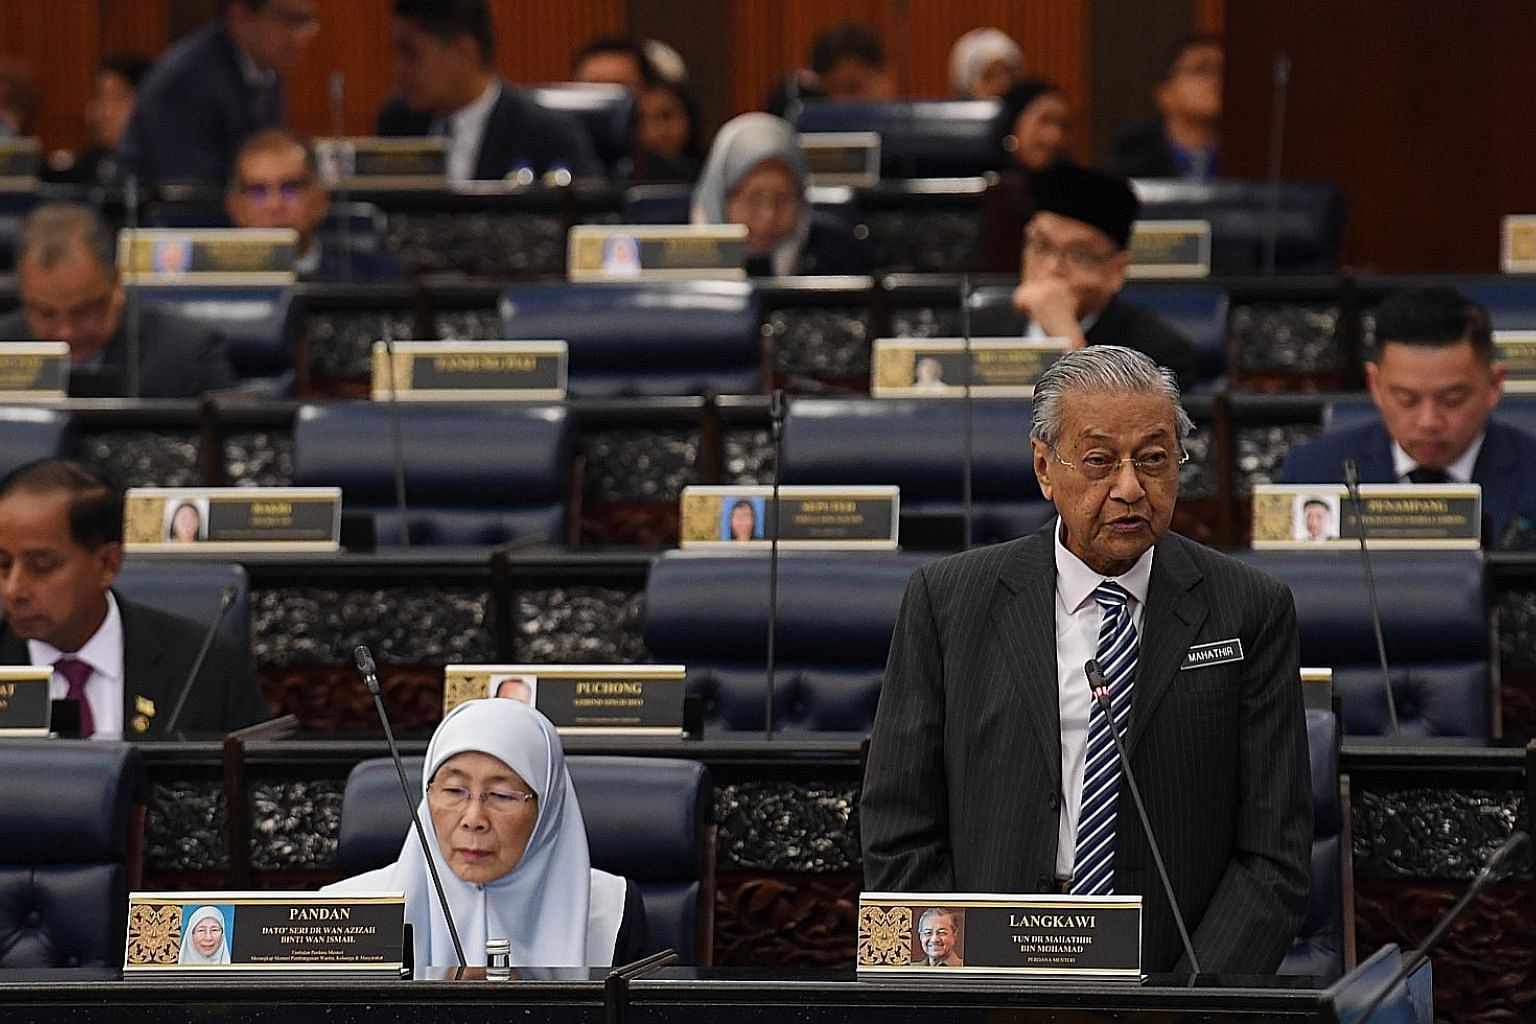 Malaysian Prime Minister Mahathir Mohamad speaking at a Parliament session yesterday, with Deputy Prime Minister Wan Azizah Wan Ismail seated next to him. PHOTO: BERNAMA